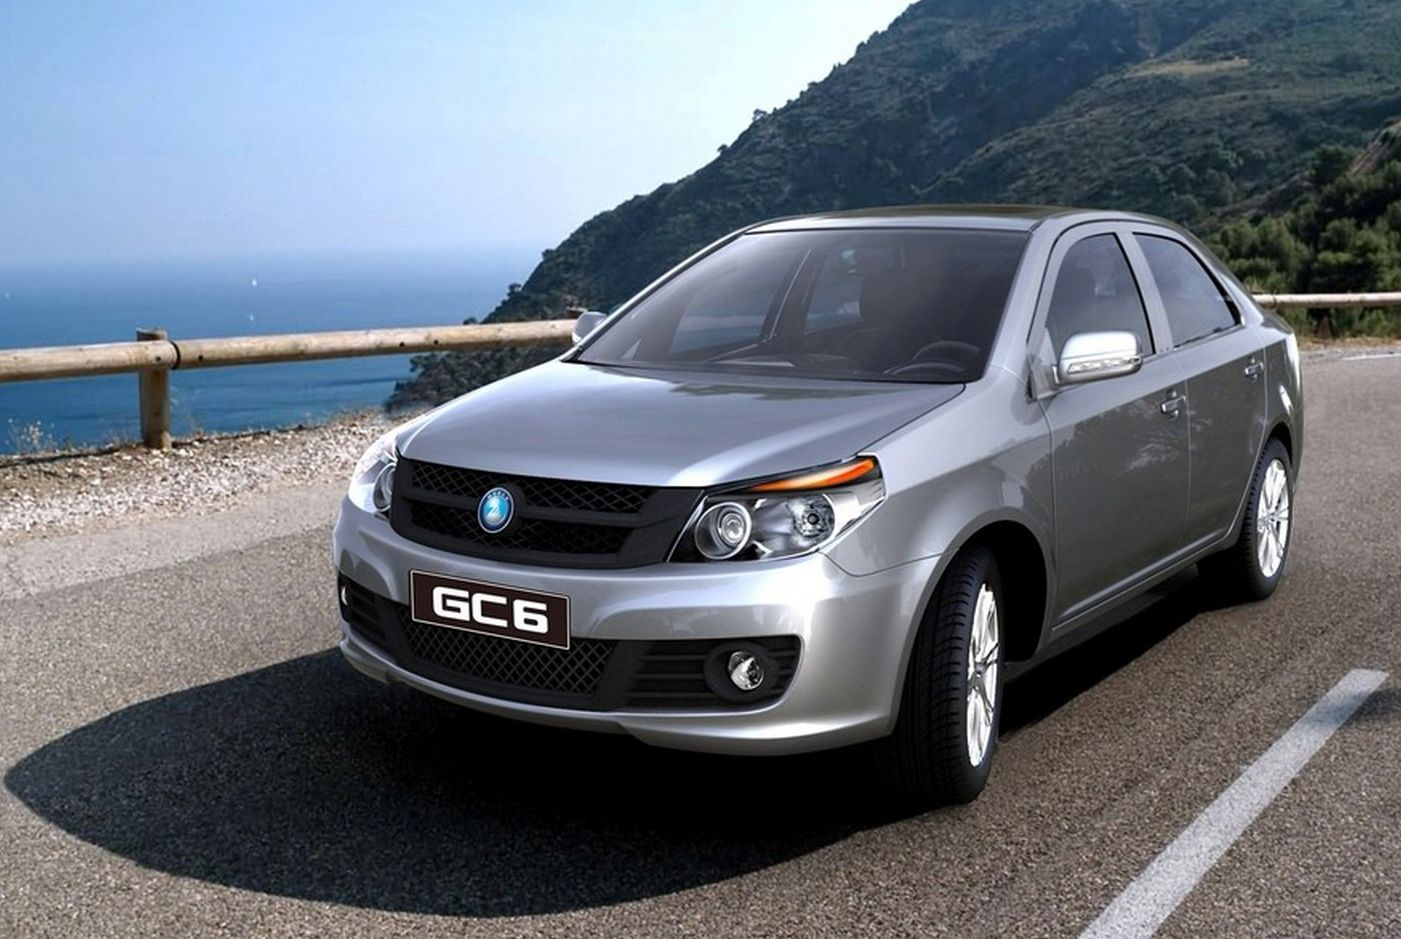 GC6 - Geely motors